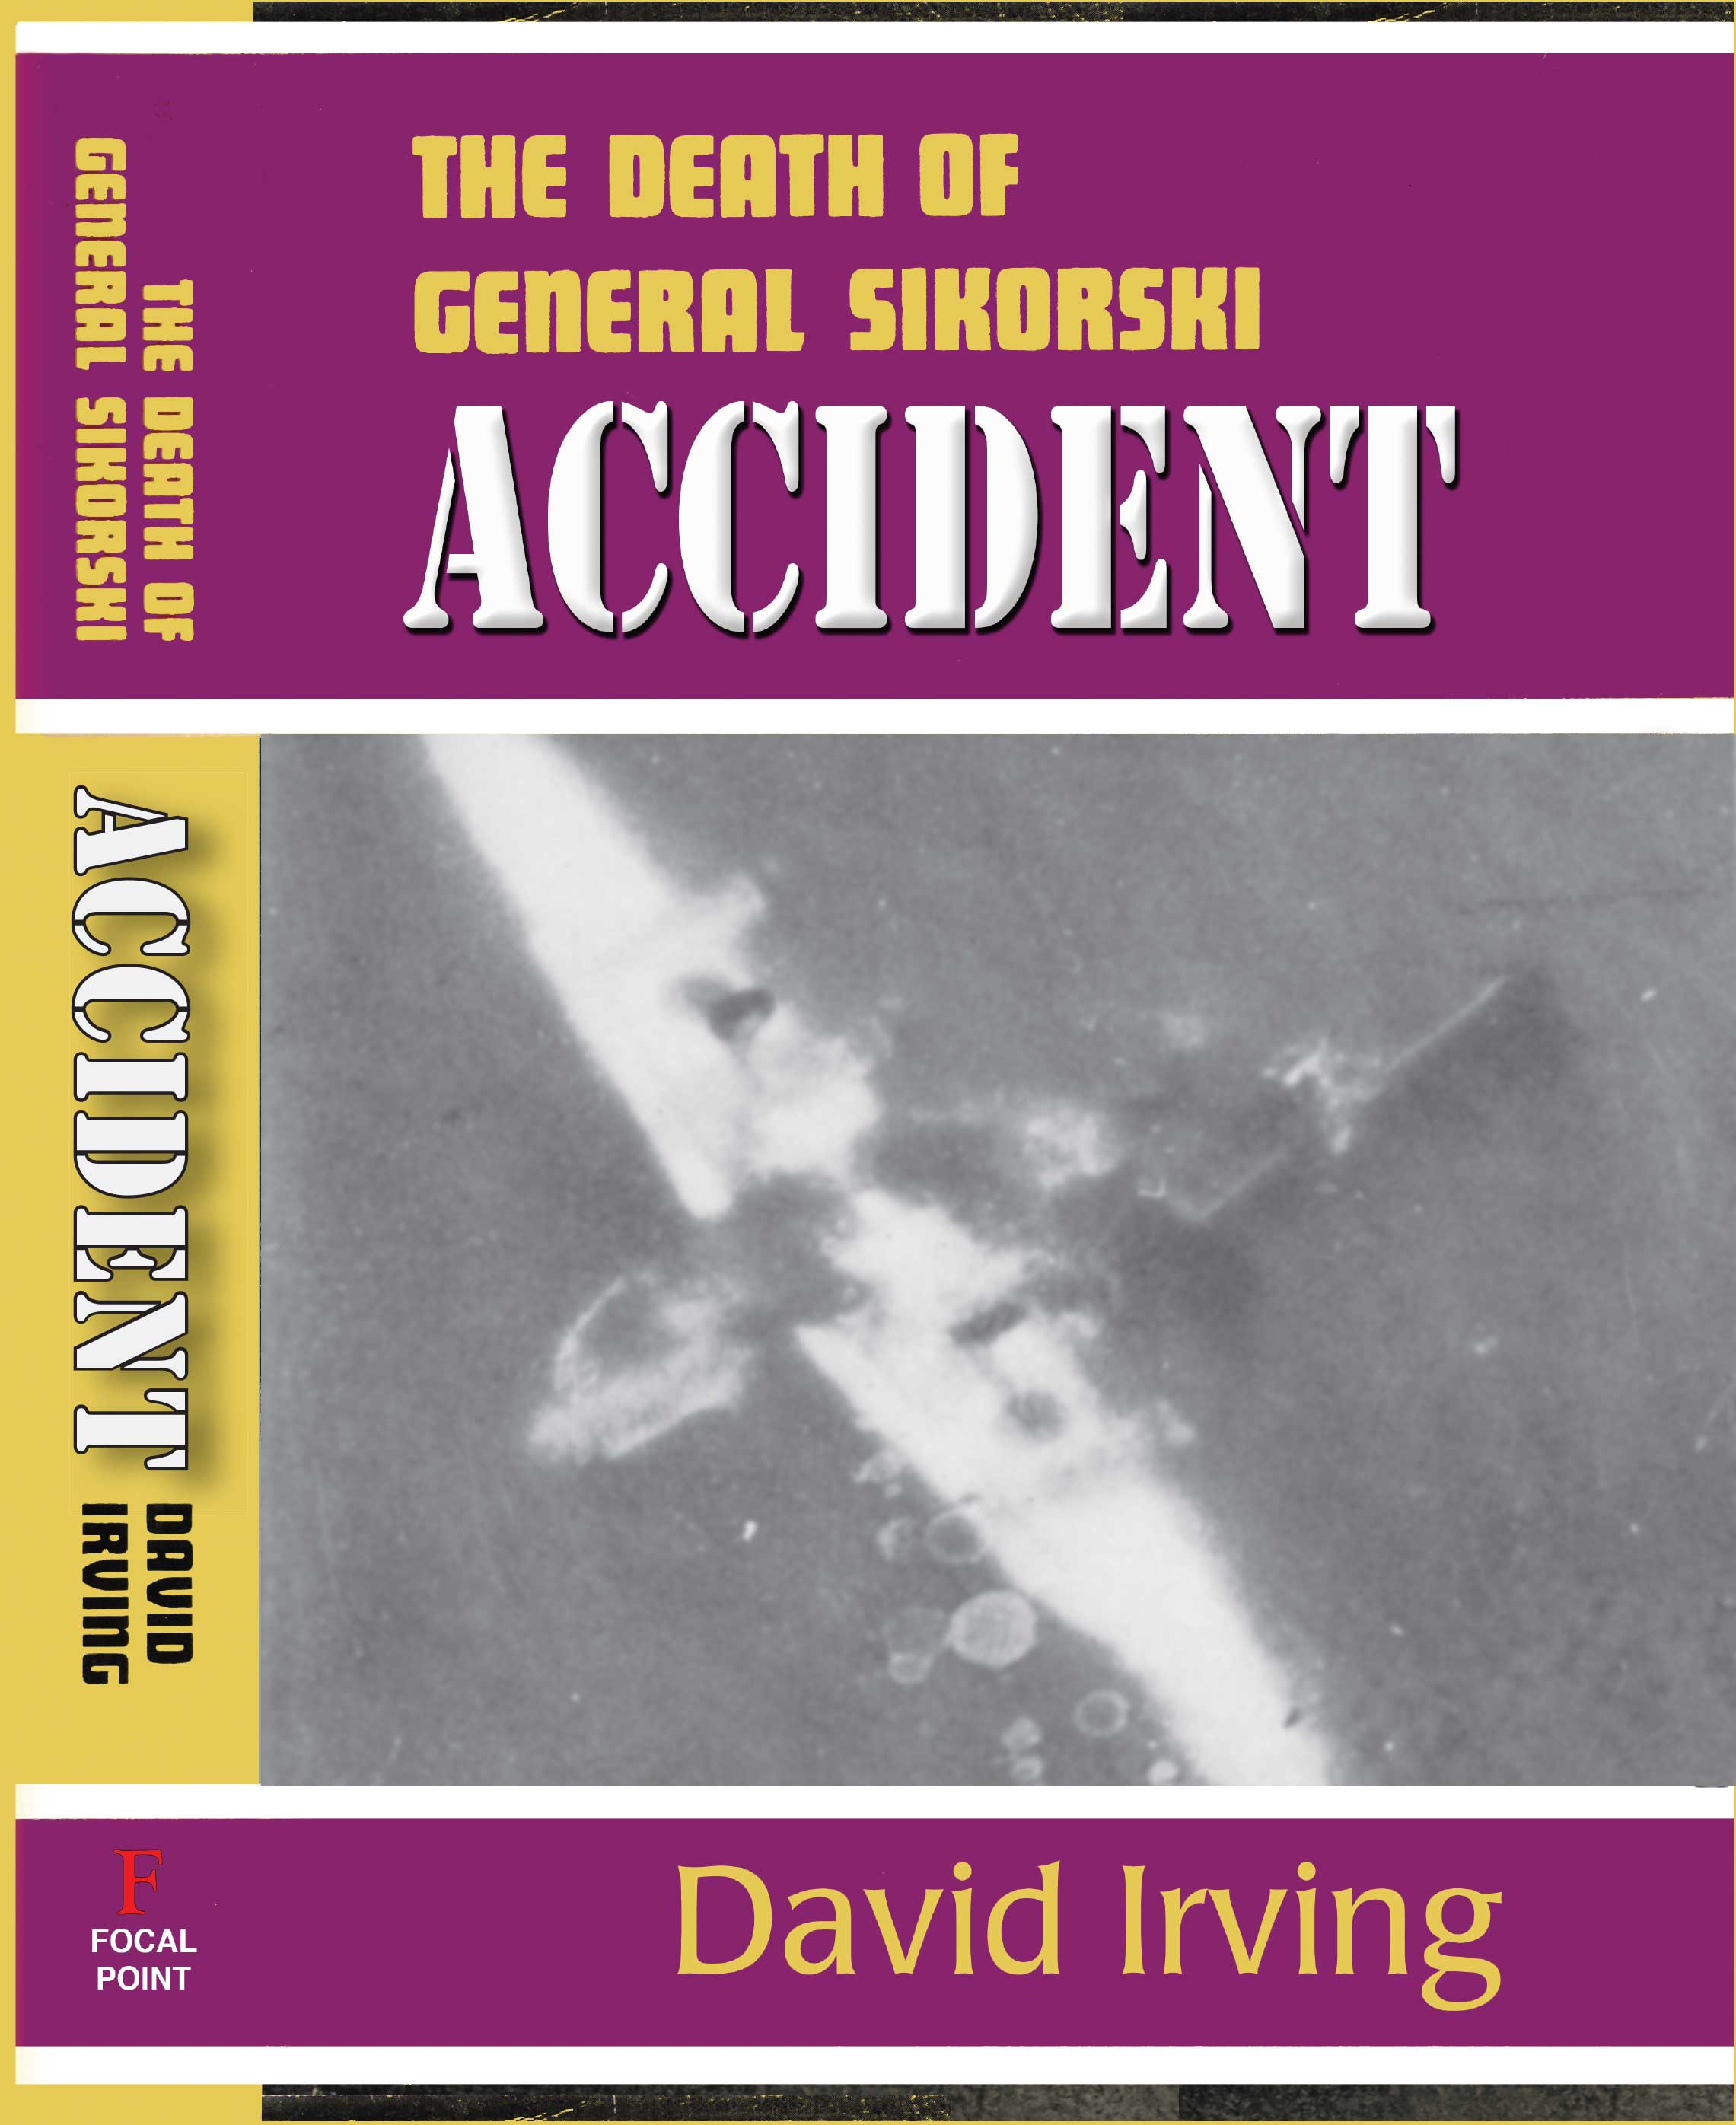 ACCIDENT. The Death of General Sikorski